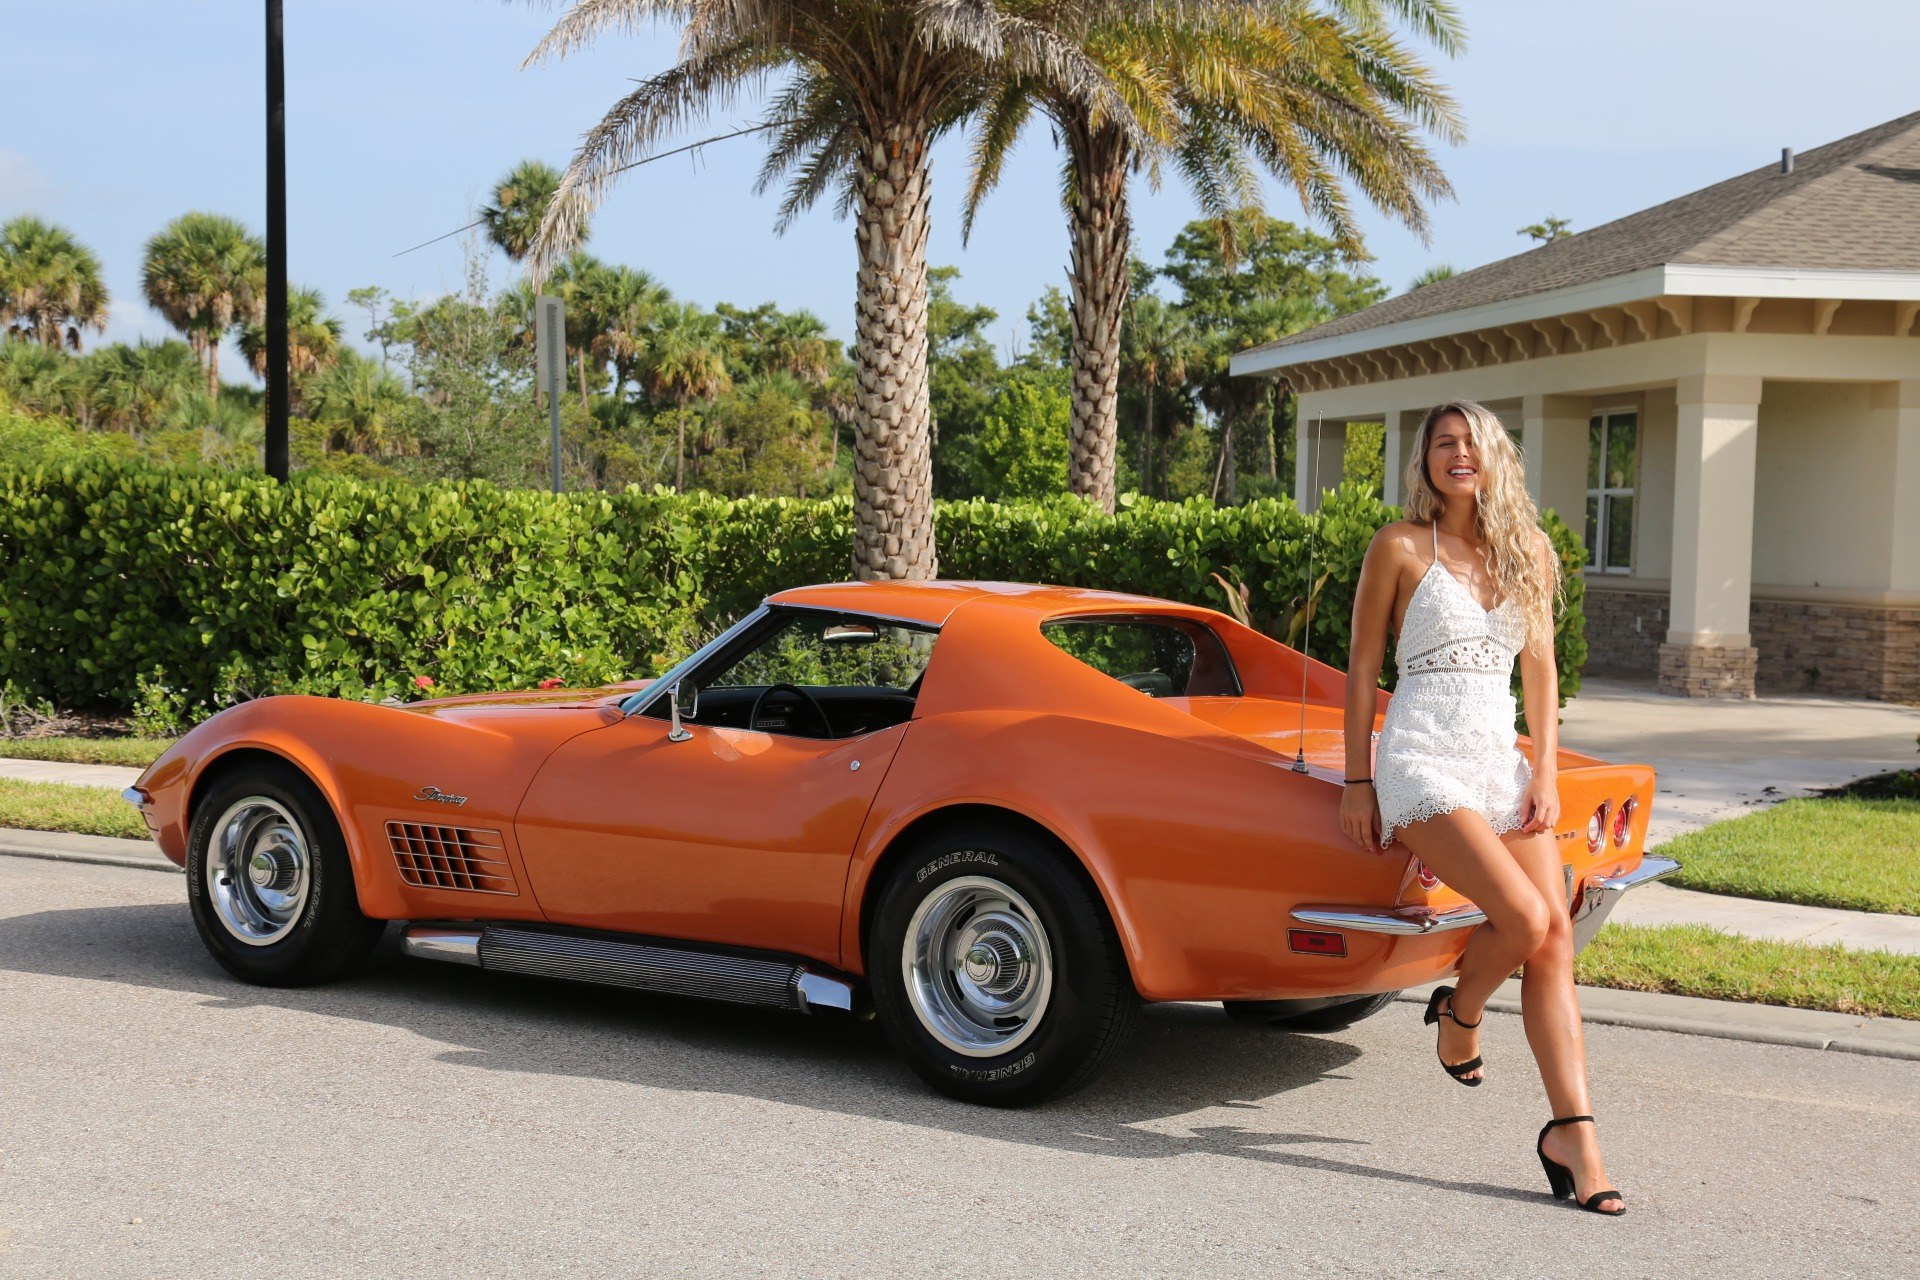 Used 1971 Chevy Corvette Removable rear Glass and T Top 4 speed for sale Sold at Muscle Cars for Sale Inc. in Fort Myers FL 33912 5